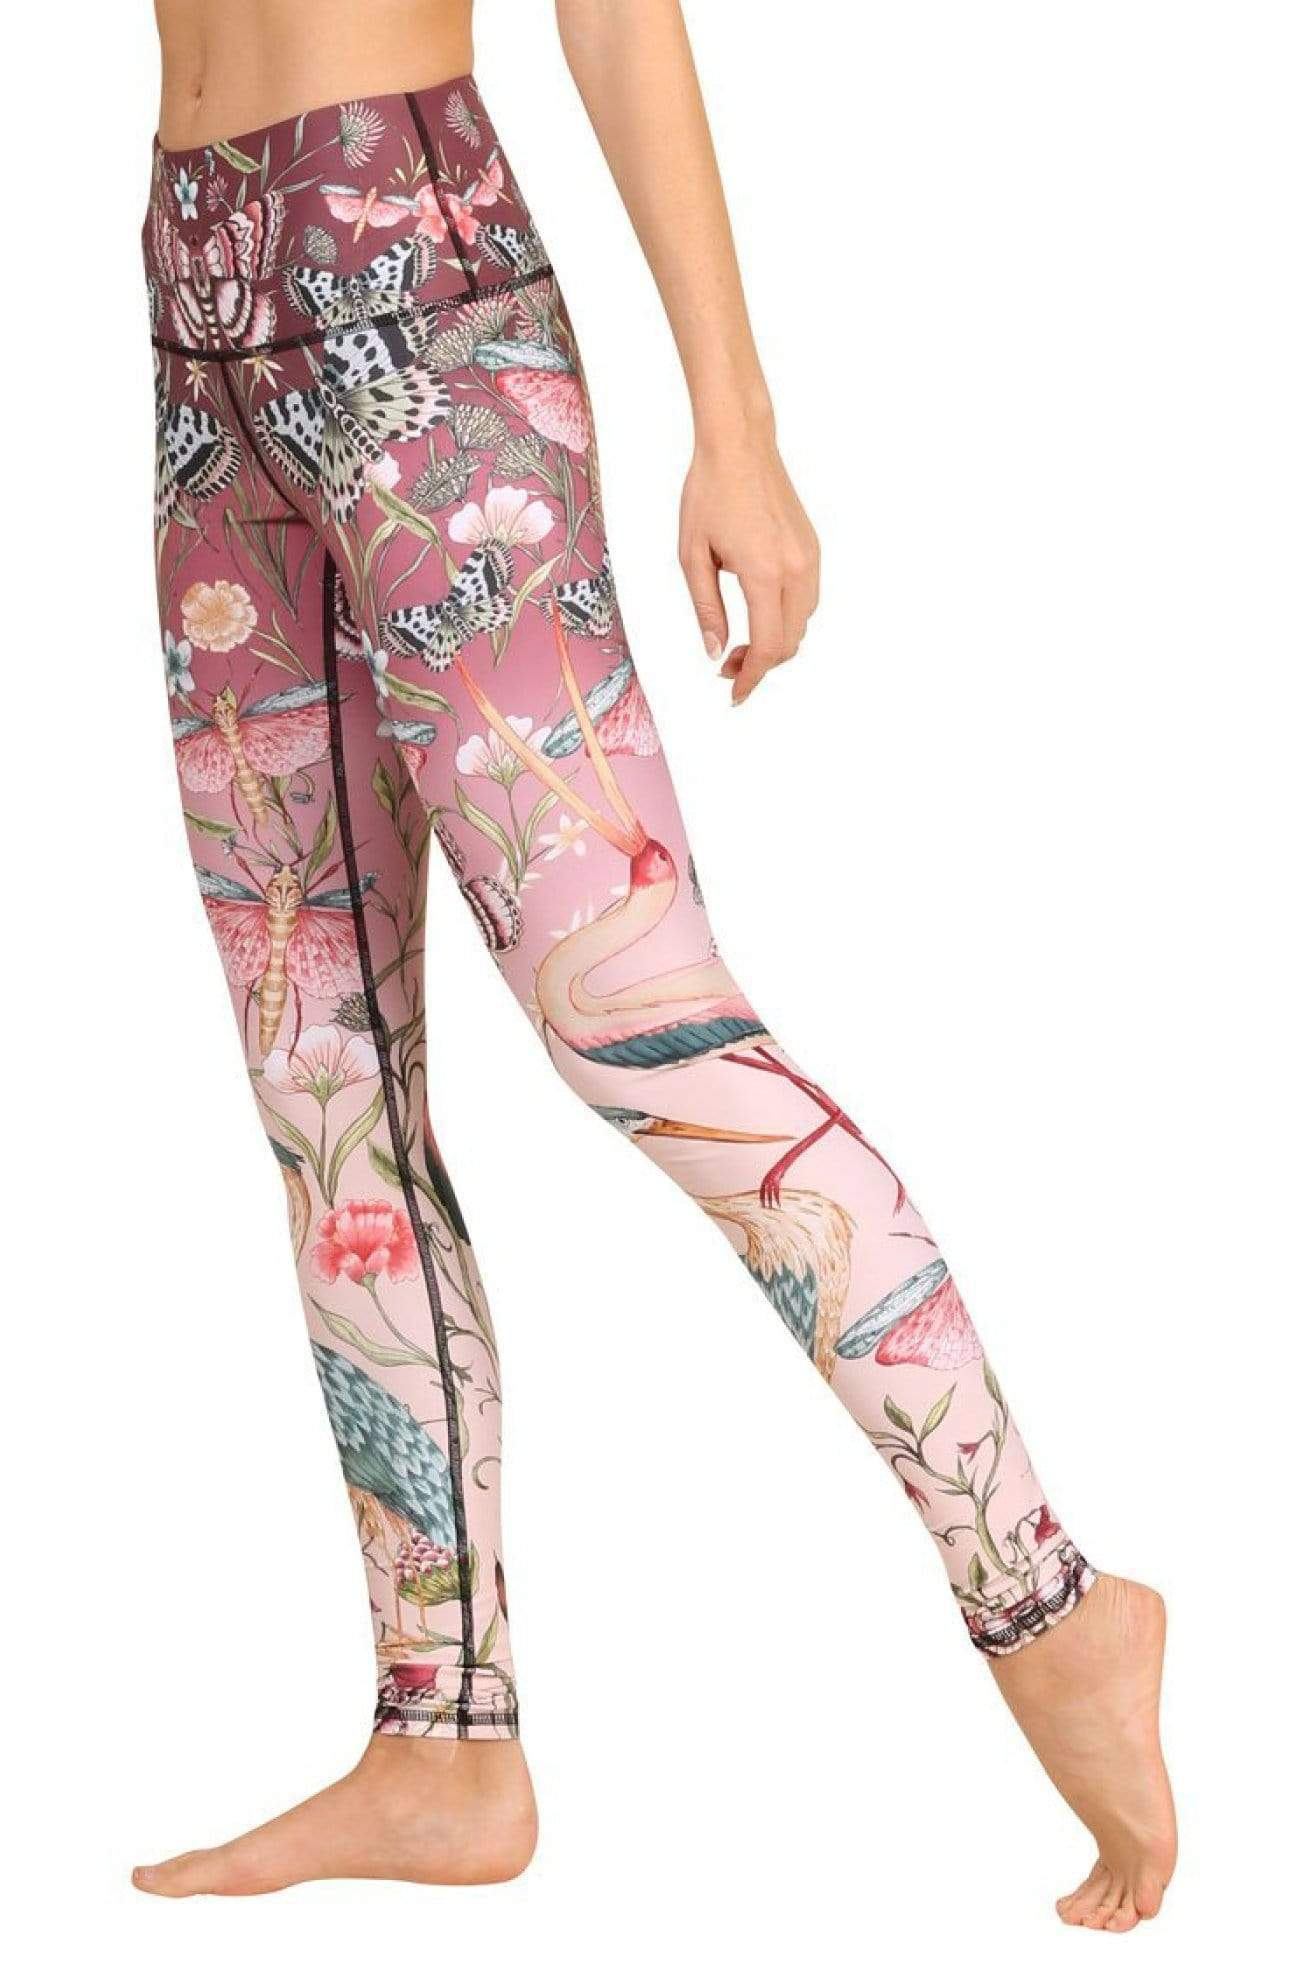 Yoga Democracy Leggings Pretty in Pink Printed Yoga Leggings